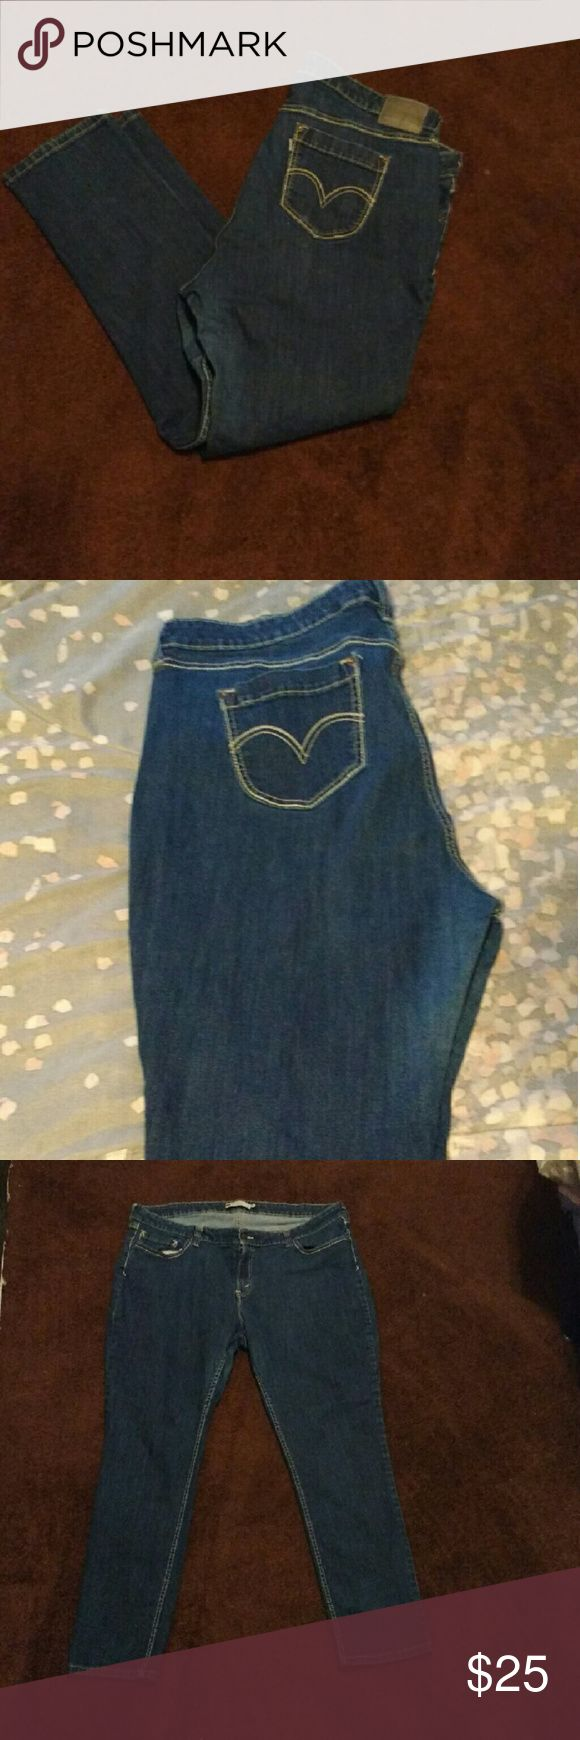 """Levi's Mid-Rise Jeans Good pair of jeans with nice thick material. Thighs have a slight loving between them but I didn't actually wear them as often as I do other jeans. Real pockets. (Last pic says """"Mid-rise Skinny. 22w) I'm normally a regular 22 so I would out these in the straight leg Category but if you have bigger calves, these would be 'skinner'.  🌼Great Quality! 🌼 ⚠NO TRADES⚠  🎁 Use the BUNDLE feature! 🎀  😘Make Me an offer! Levi's Jeans Straight Leg"""